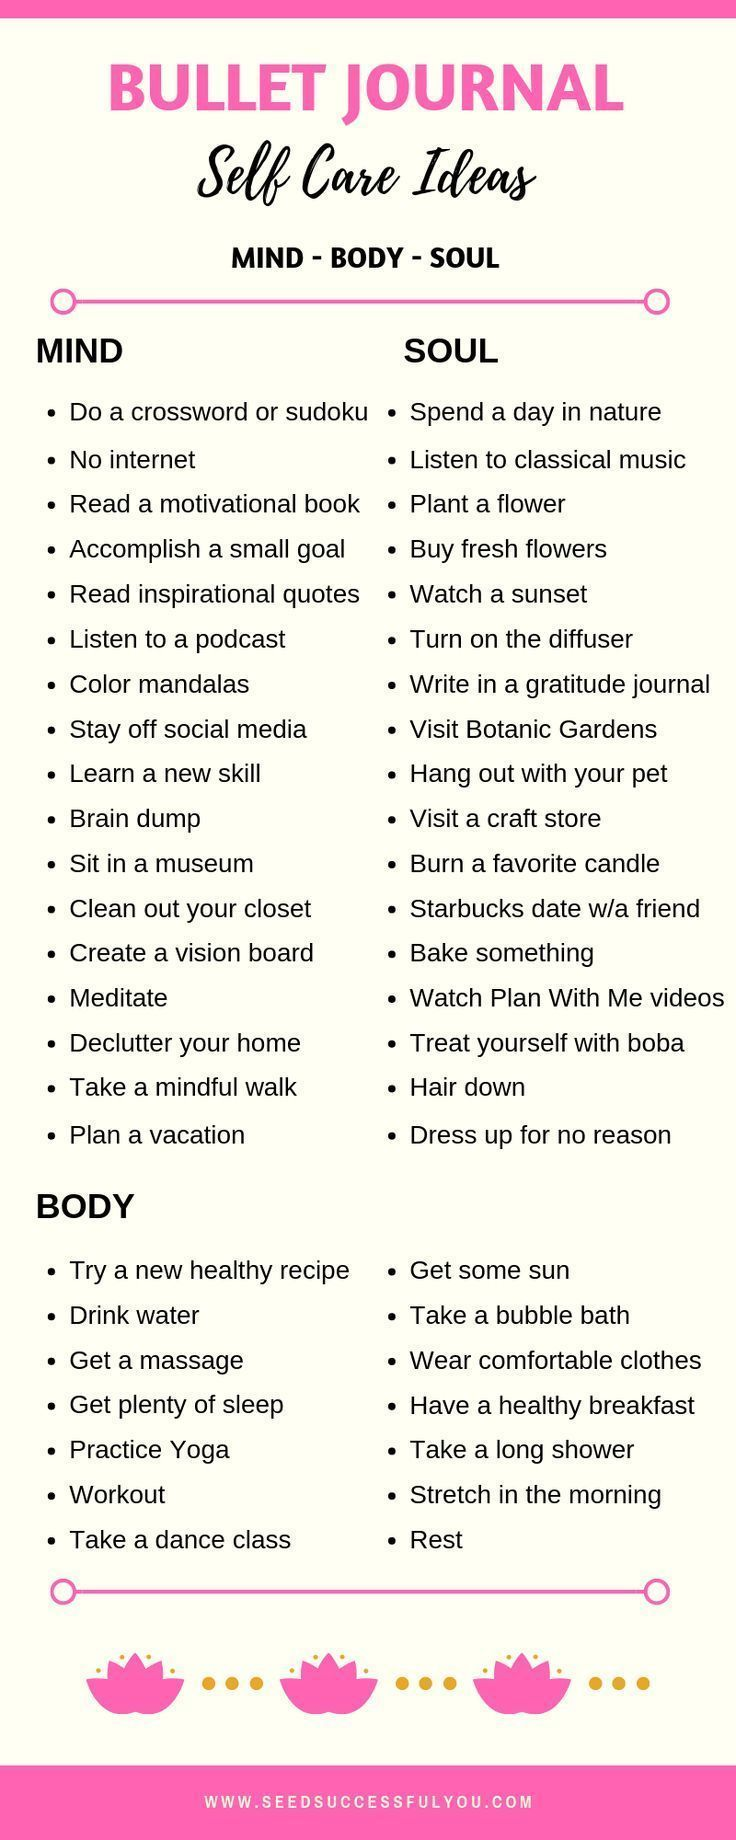 48 Bullet Journal Self-Care Ideas for a Healthy Mind, Body & Soul!